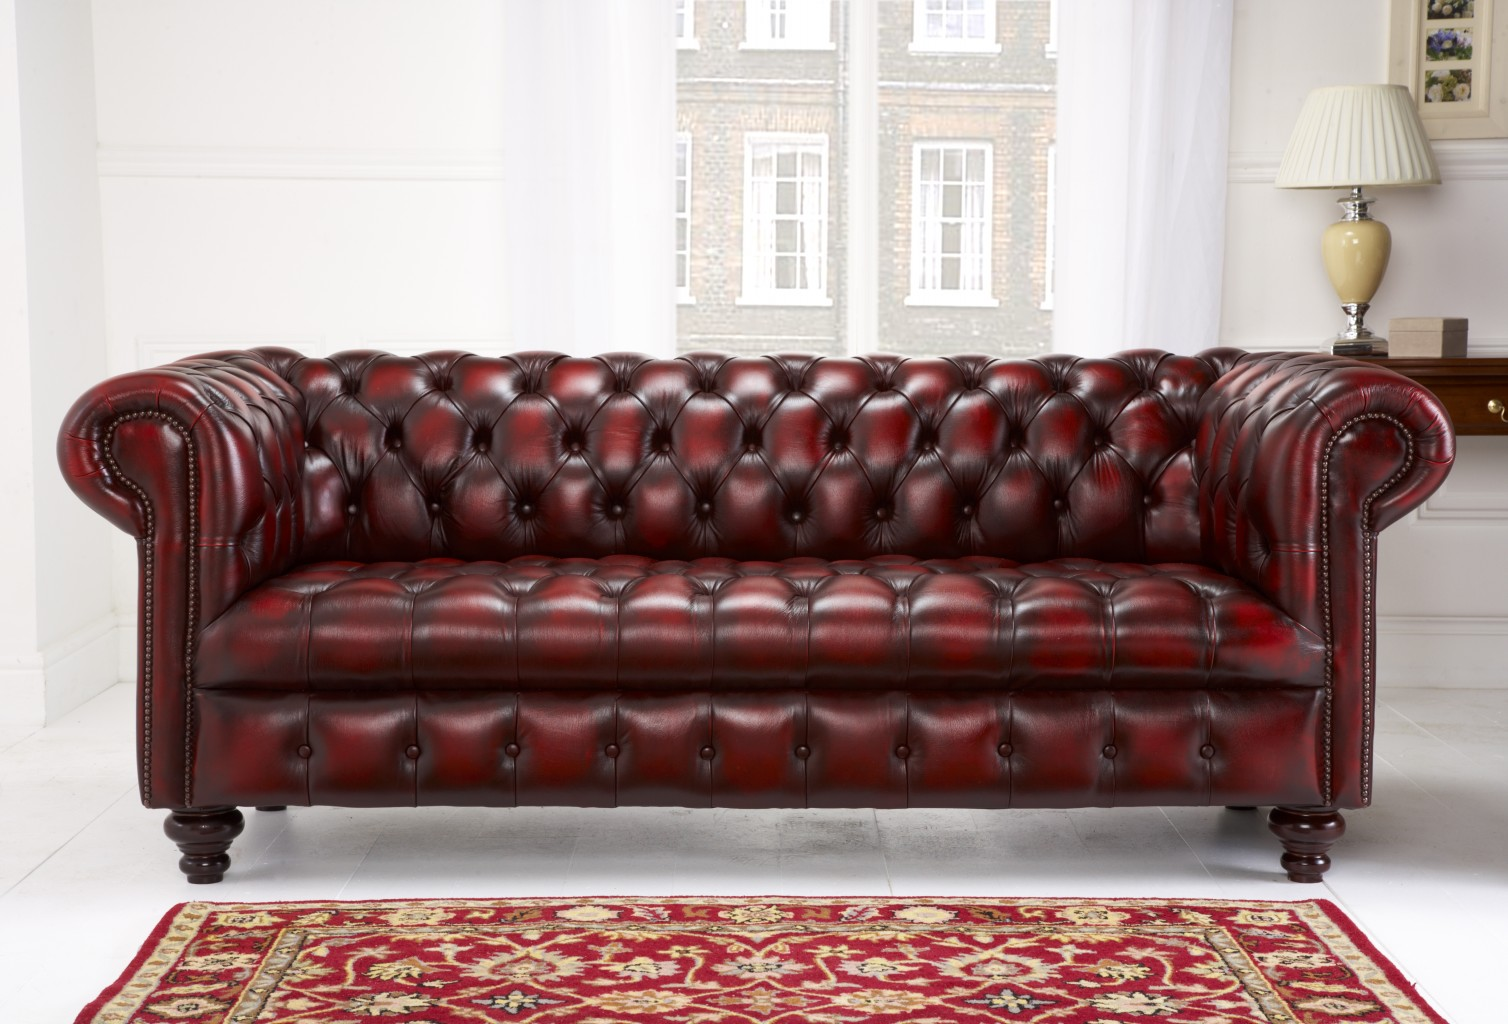 Edwardian chesterfield english chesterfields for Sofas clasicos ingleses